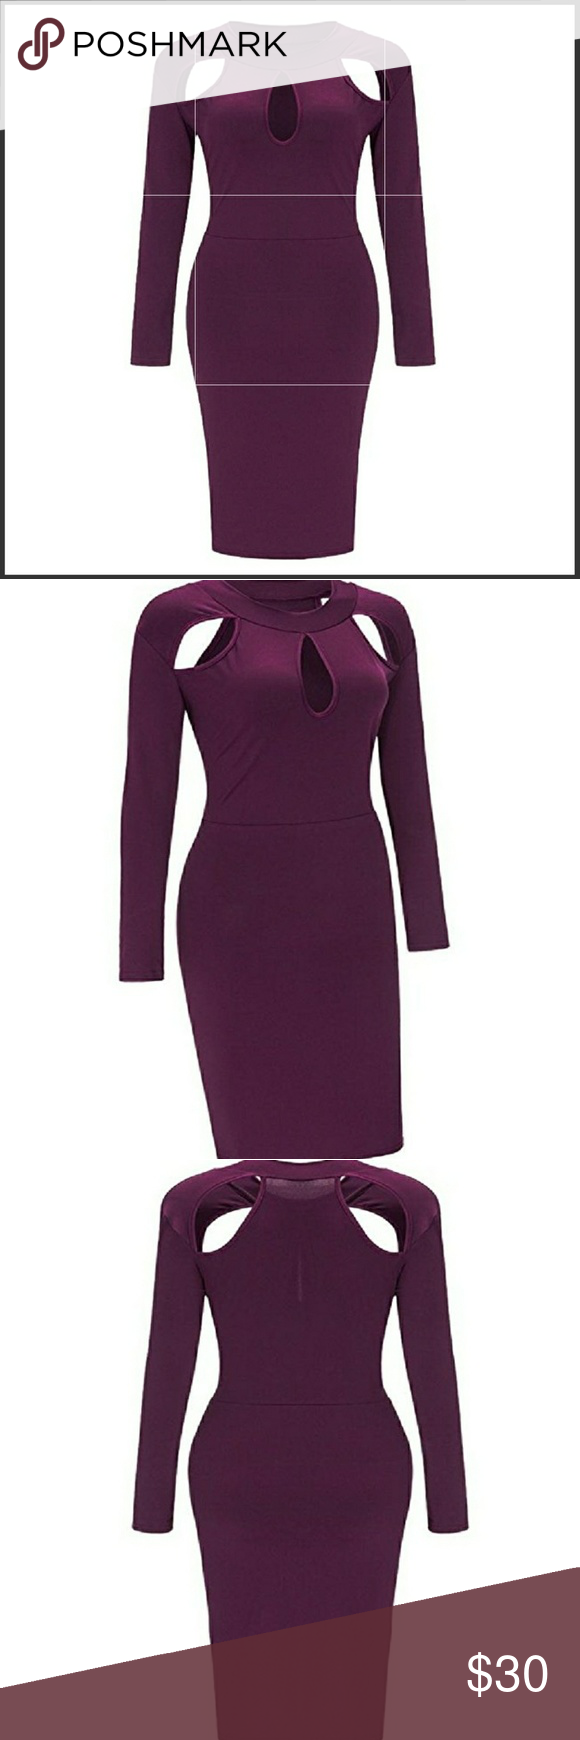 Plus size cut out dress purple dress and customer support